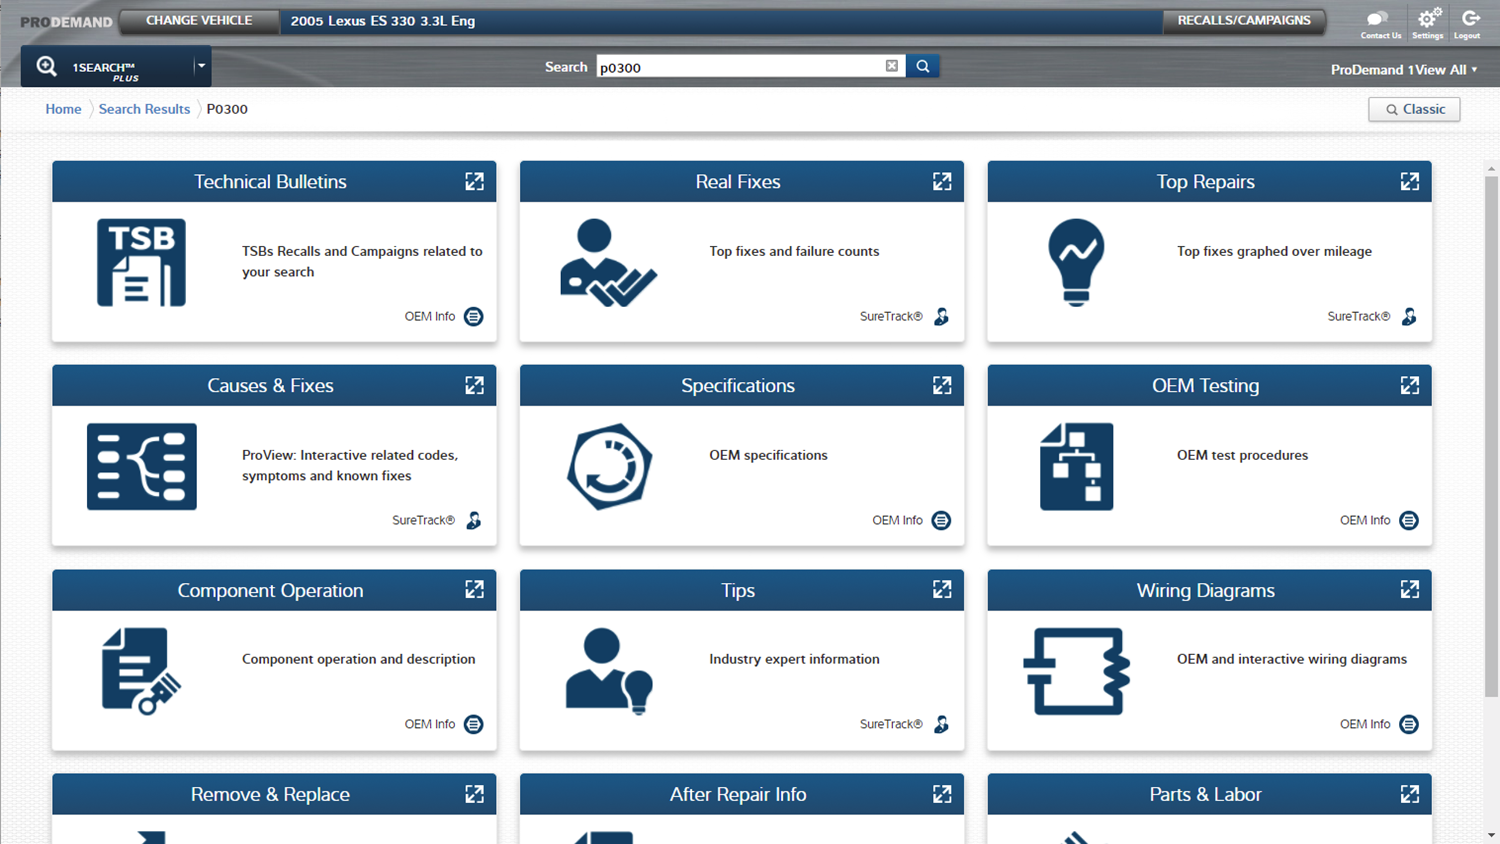 1Search Plus added to ProDemand